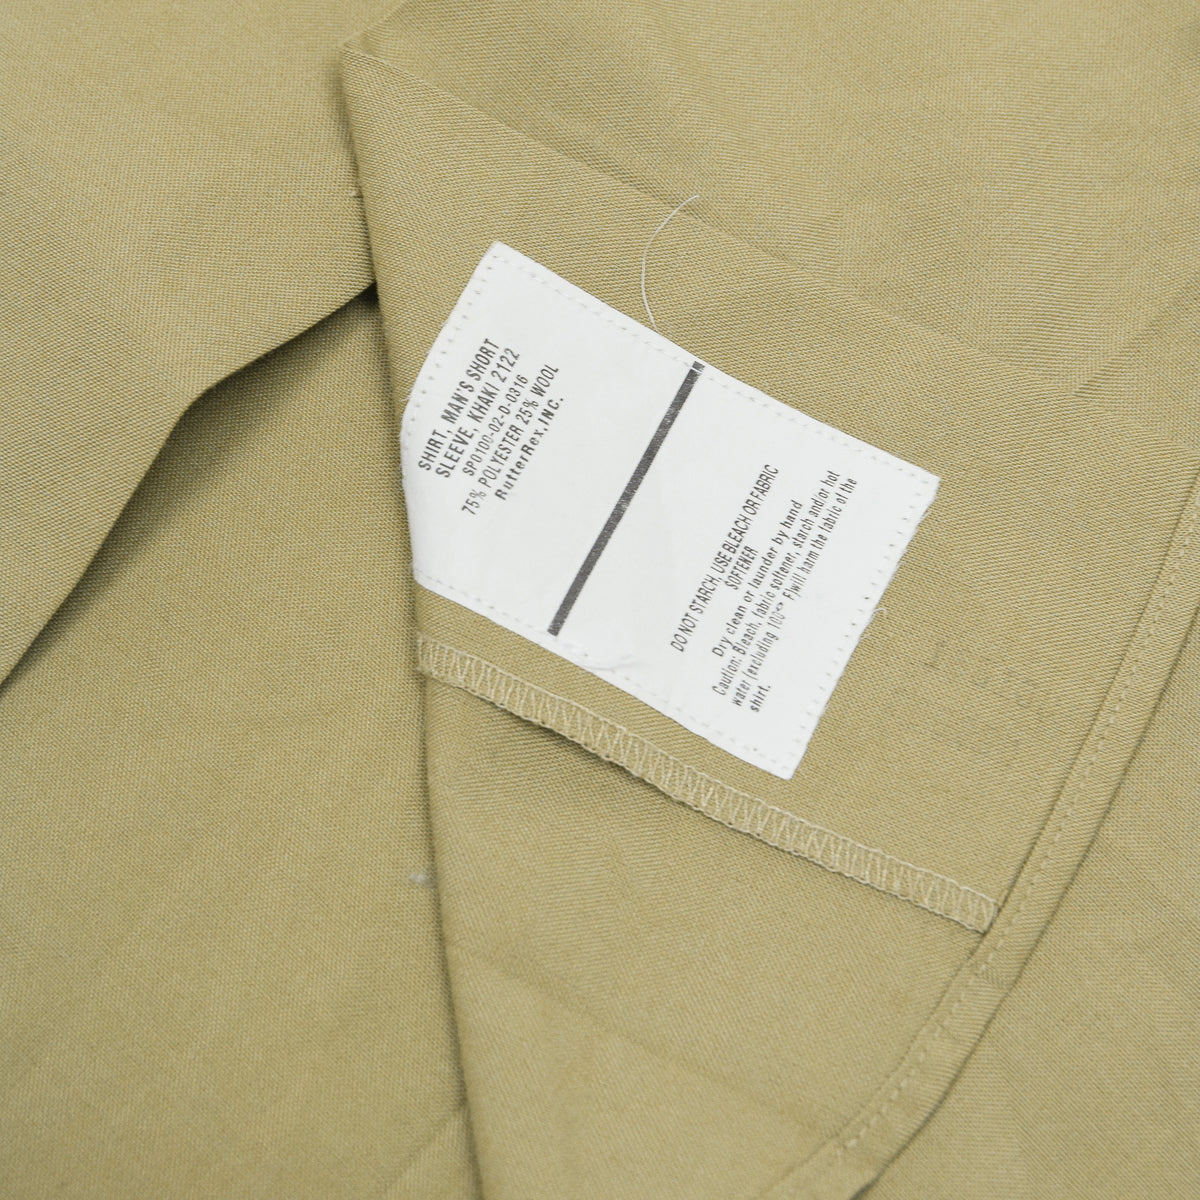 US Army DSCP Short Sleeve Khaki Cotton Military Field Shirt S internal label